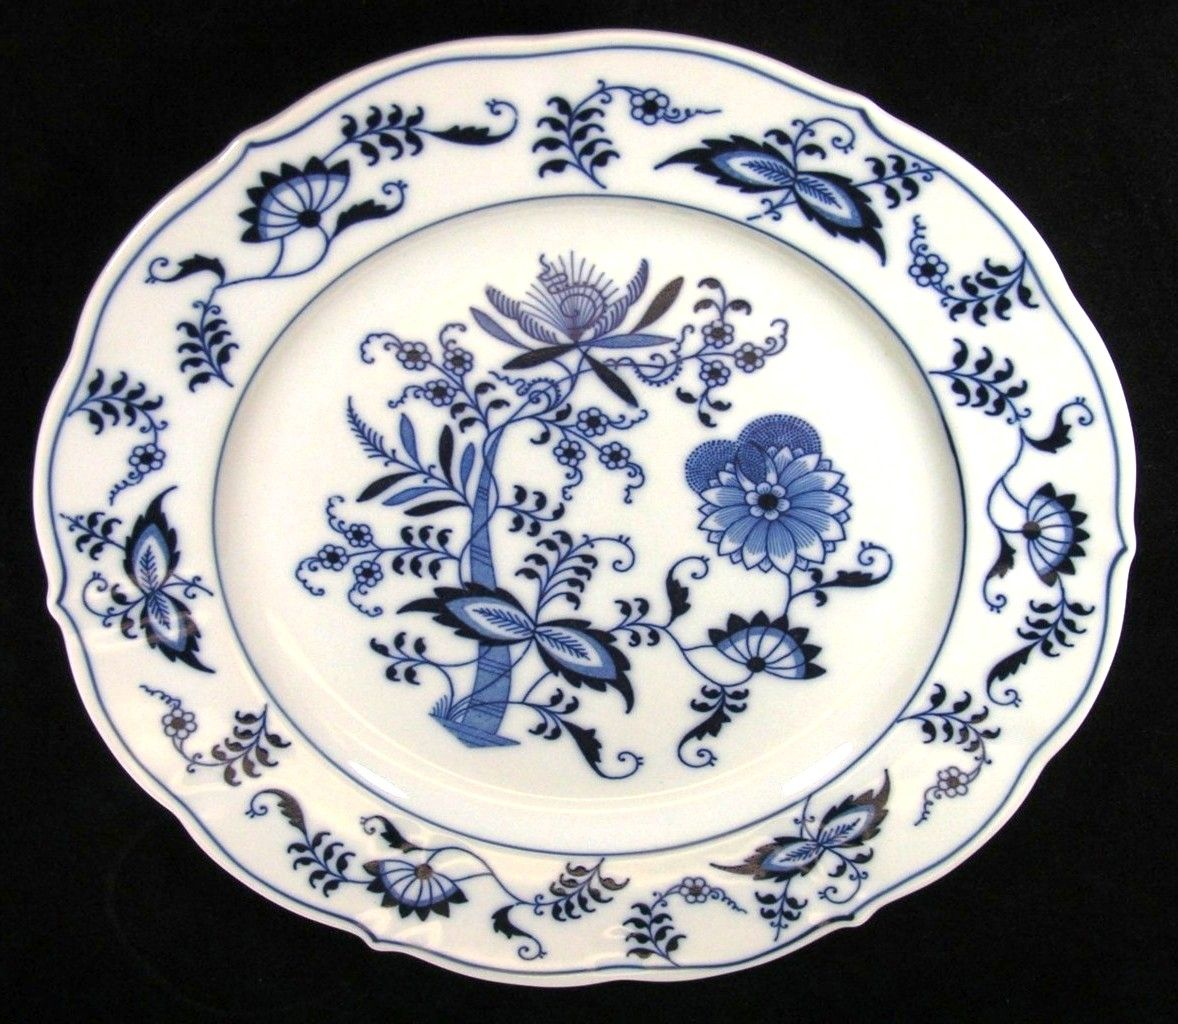 Blue Danube Blue Onion Ribbon Mark Dinner Plates//About the Blue Onion design The  sc 1 st  Pinterest & Blue Danube Blue Onion Ribbon Mark Dinner Plates//About the Blue ...